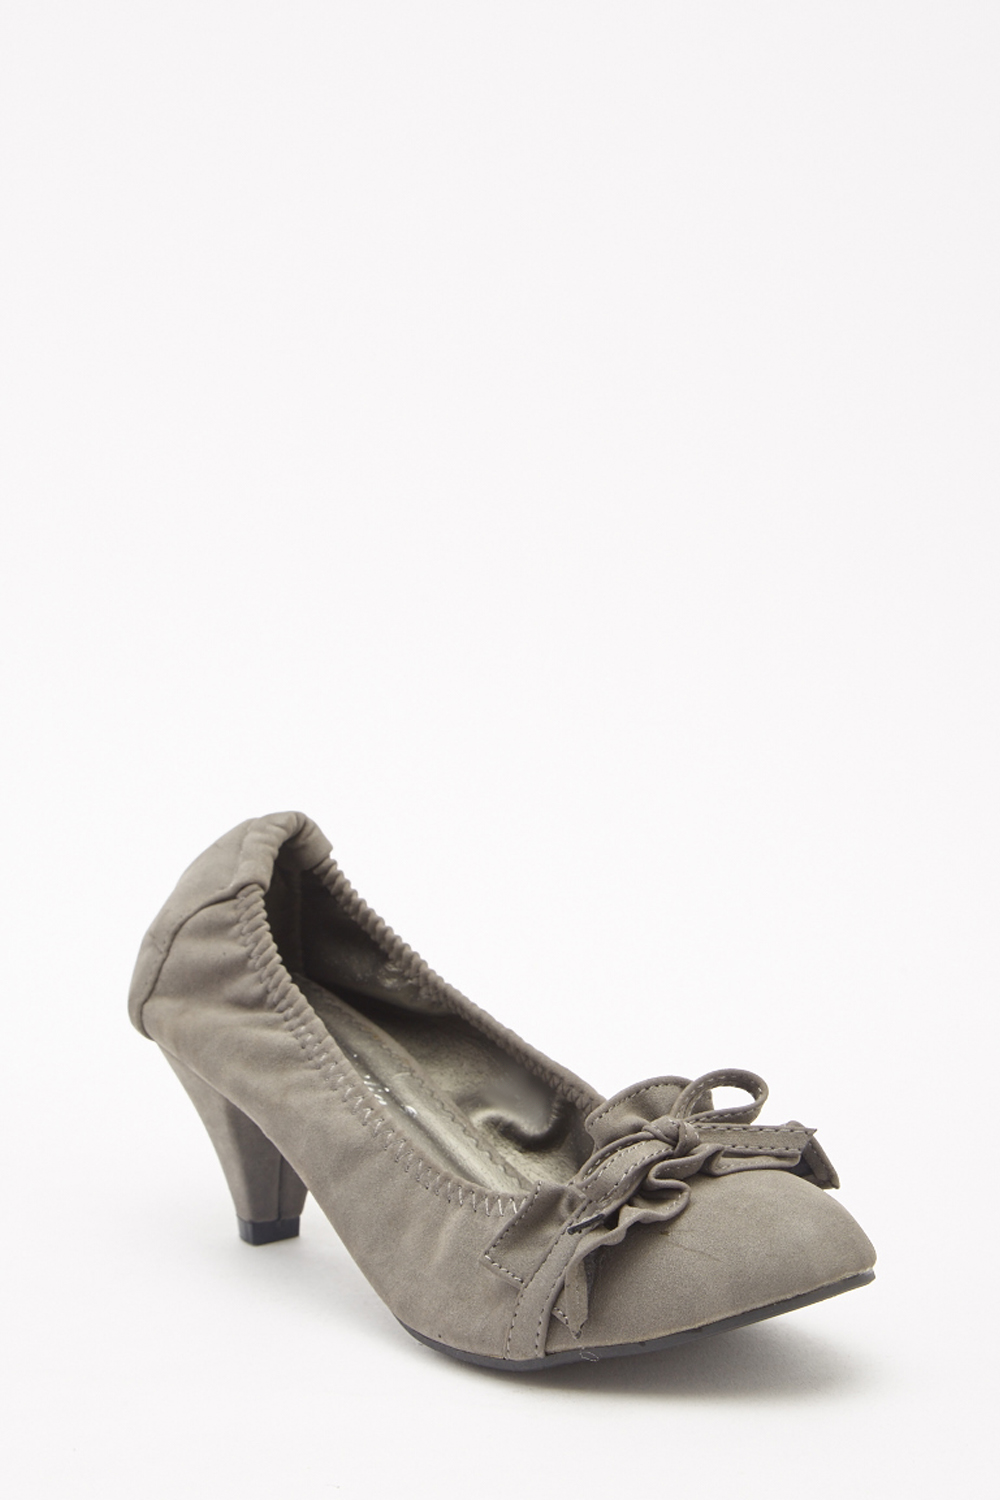 90a17eea0a5 Cone Heel Ruched Pumps - 3 Colours - Just £5